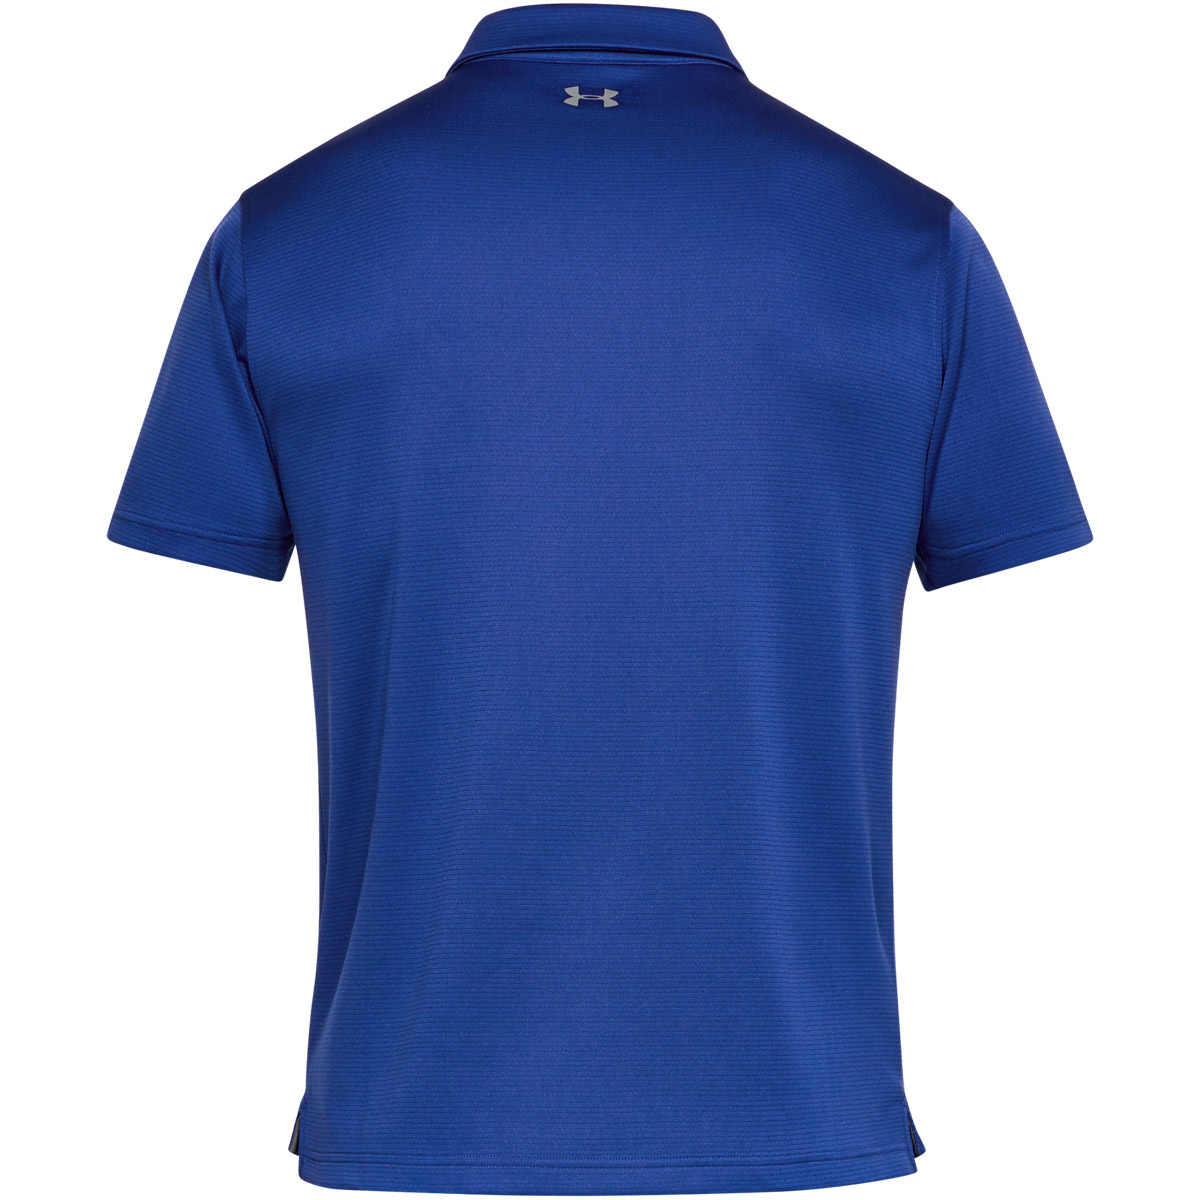 Under-Armour-Mens-2019-Golf-Tech-Wicking-Textured-Soft-Light-Polo-Shirt thumbnail 31